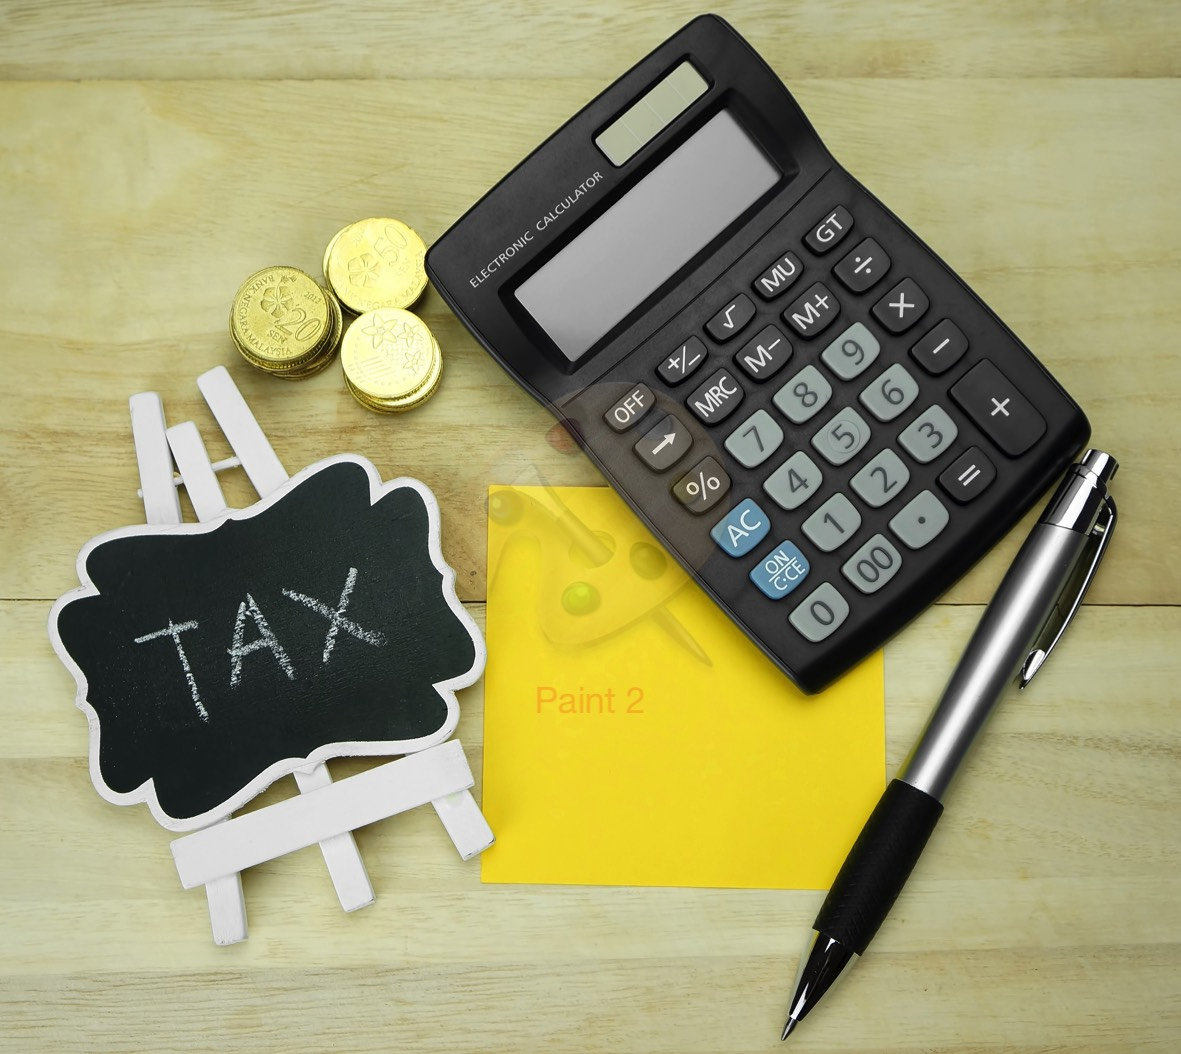 4 Ways to Make Your Tax Return Work for You